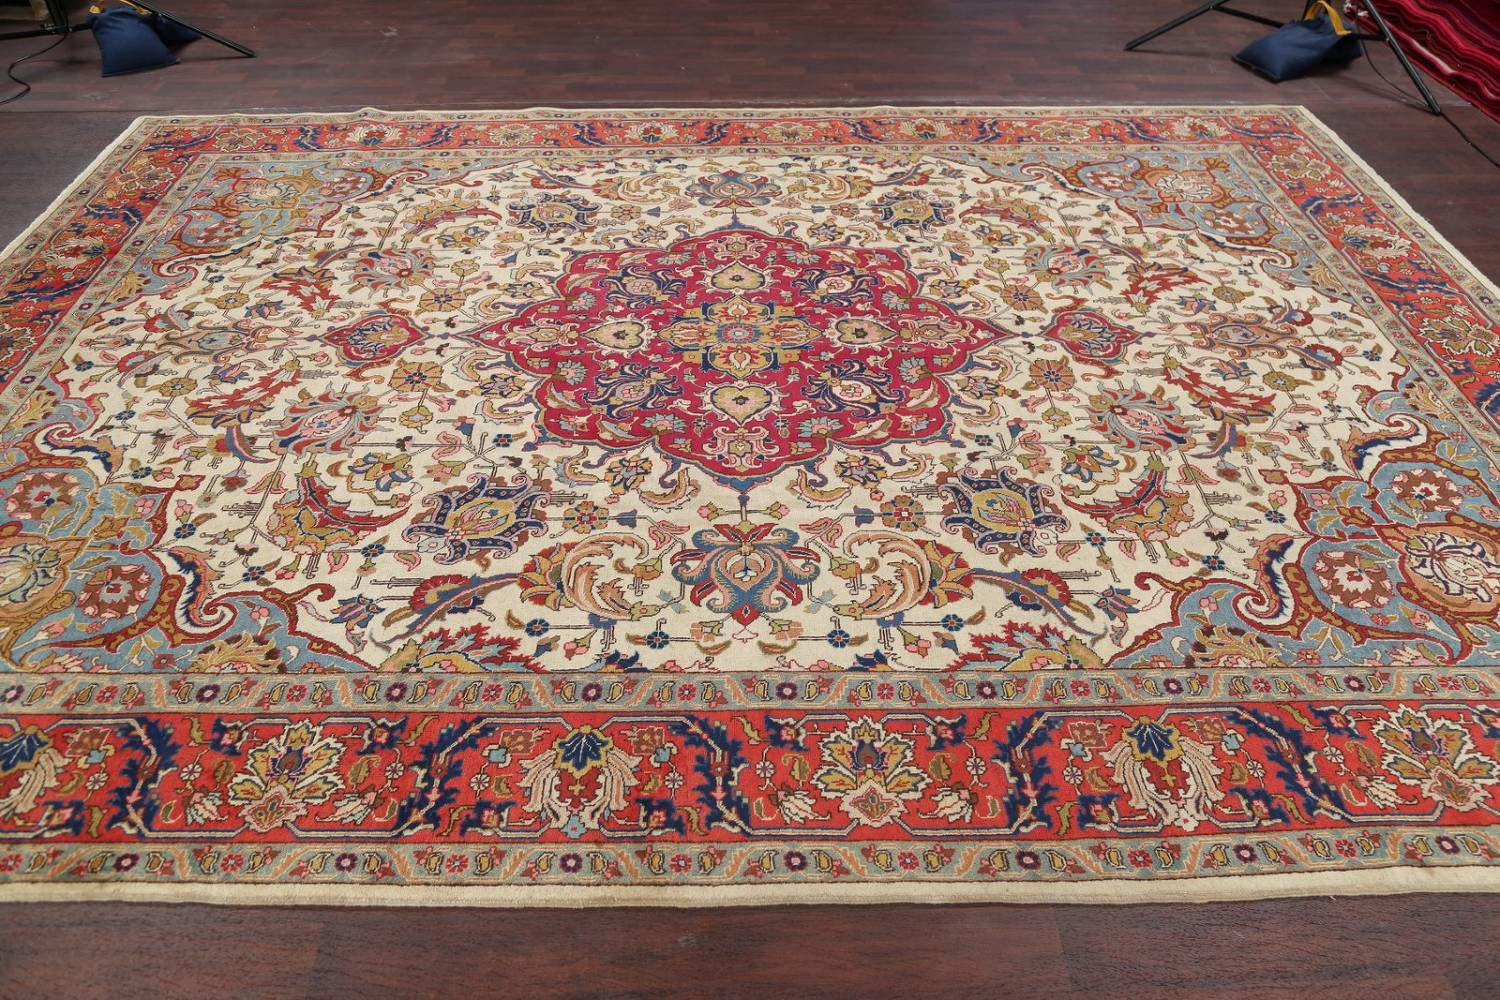 Antique Vegetable Dye Tabriz Persian Hand-Knotted Area Rug Wool 10x13 image 15